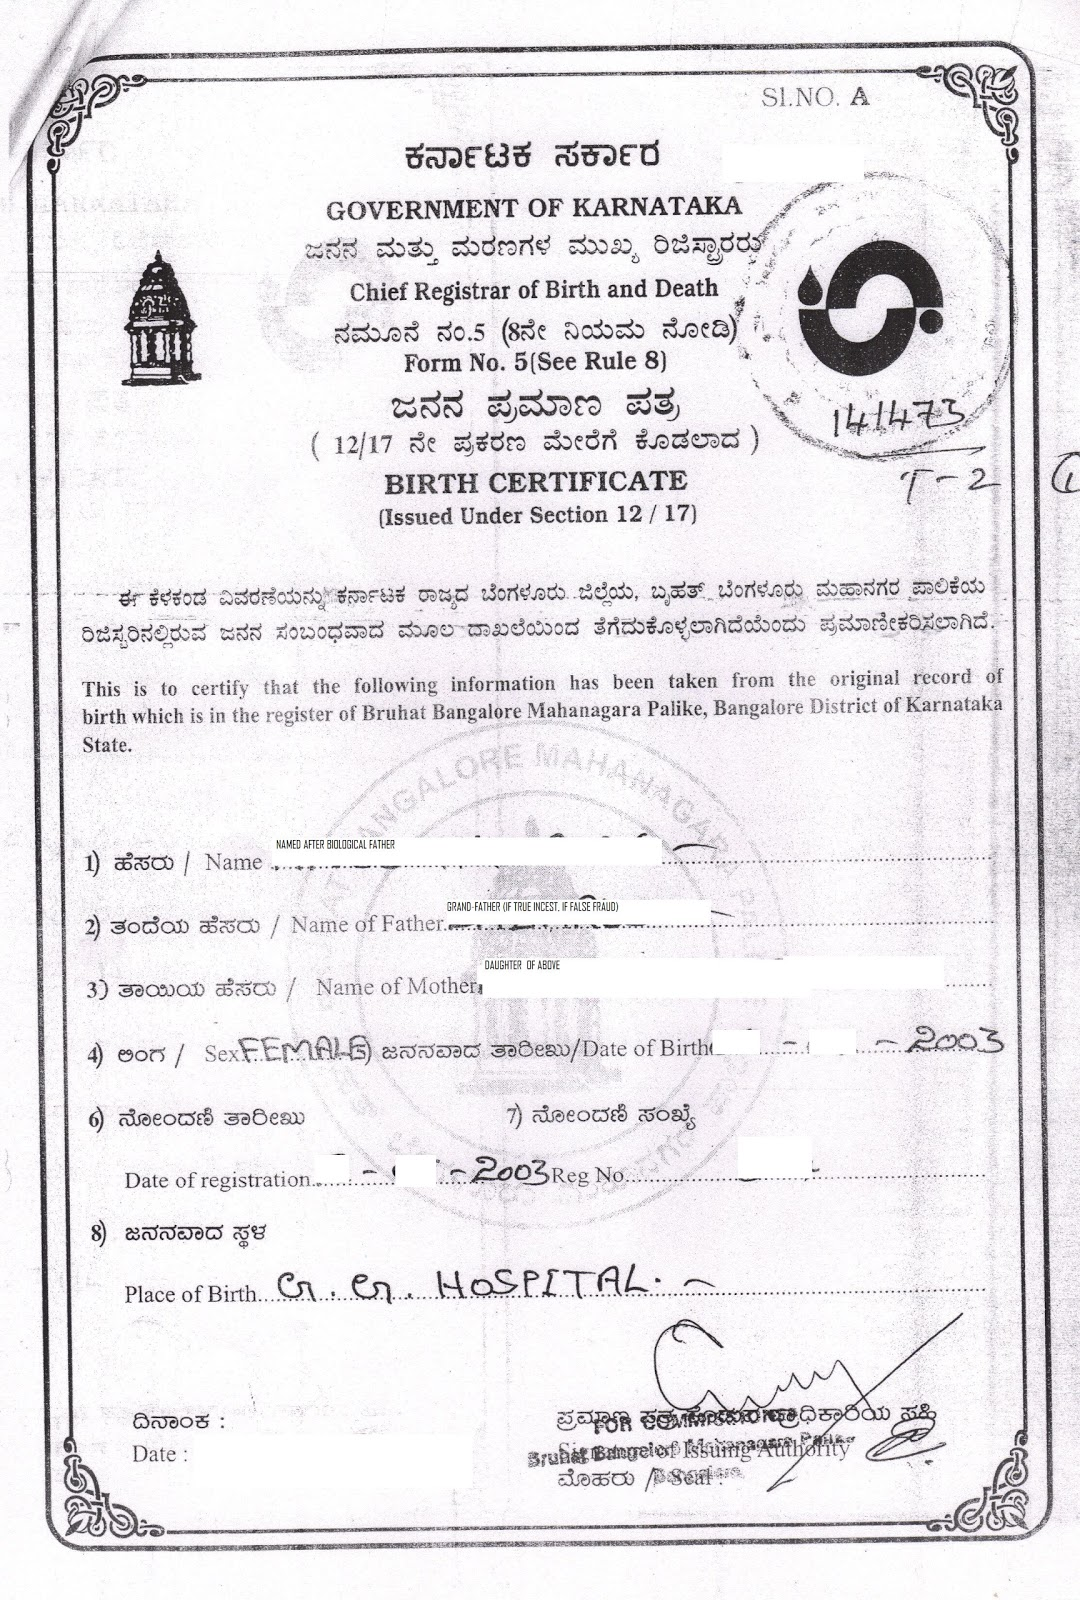 Bbmp birth certificate sample images certificate design and template birth certificate sample karnataka images certificate design and bbmp birth certificate sample gallery certificate design and aiddatafo Image collections